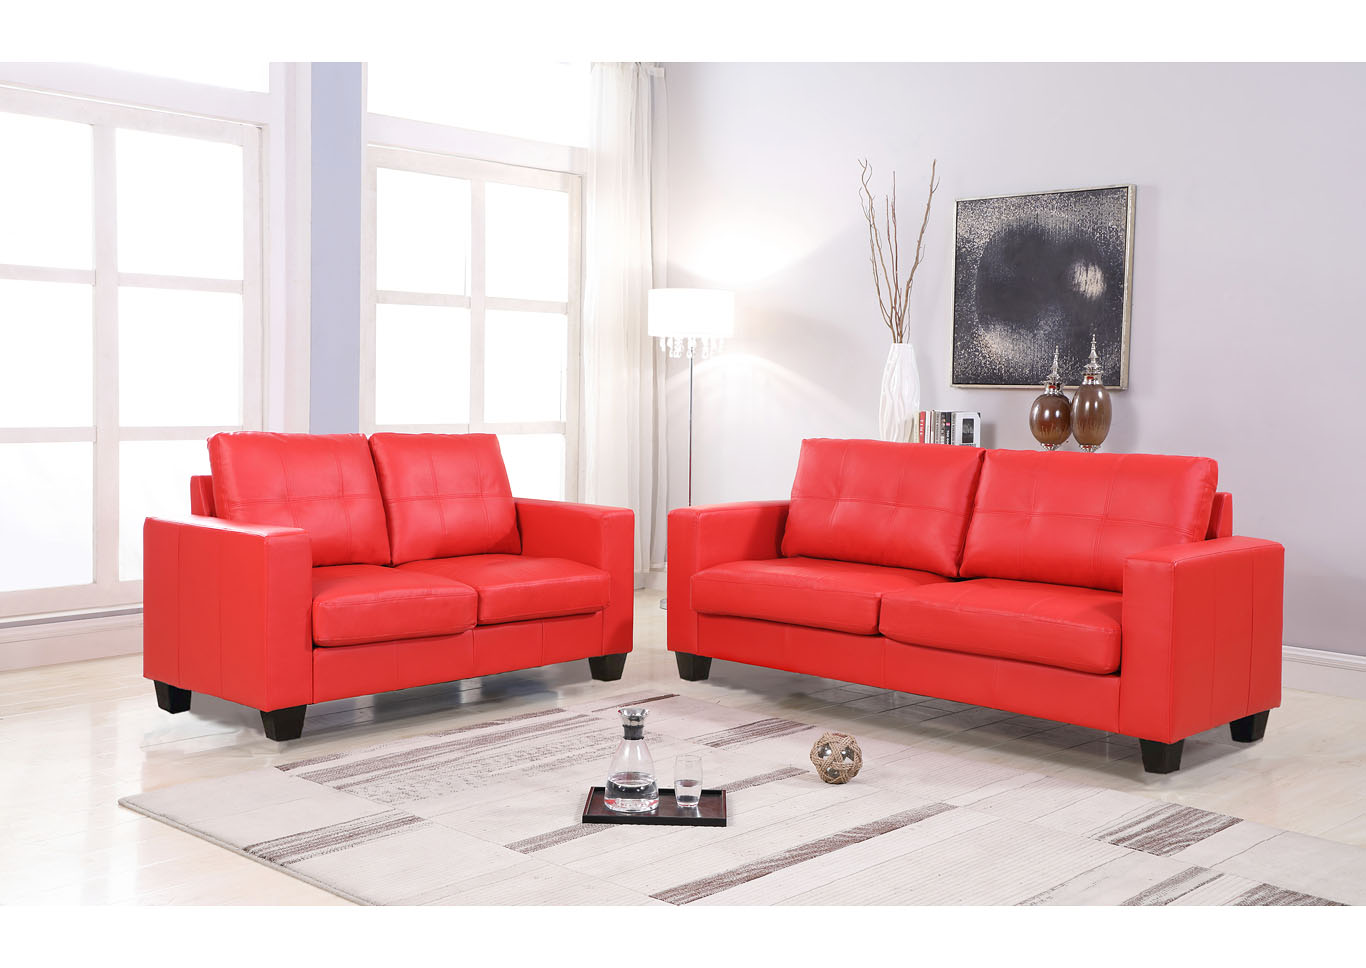 Red Loveseat,Global Trading